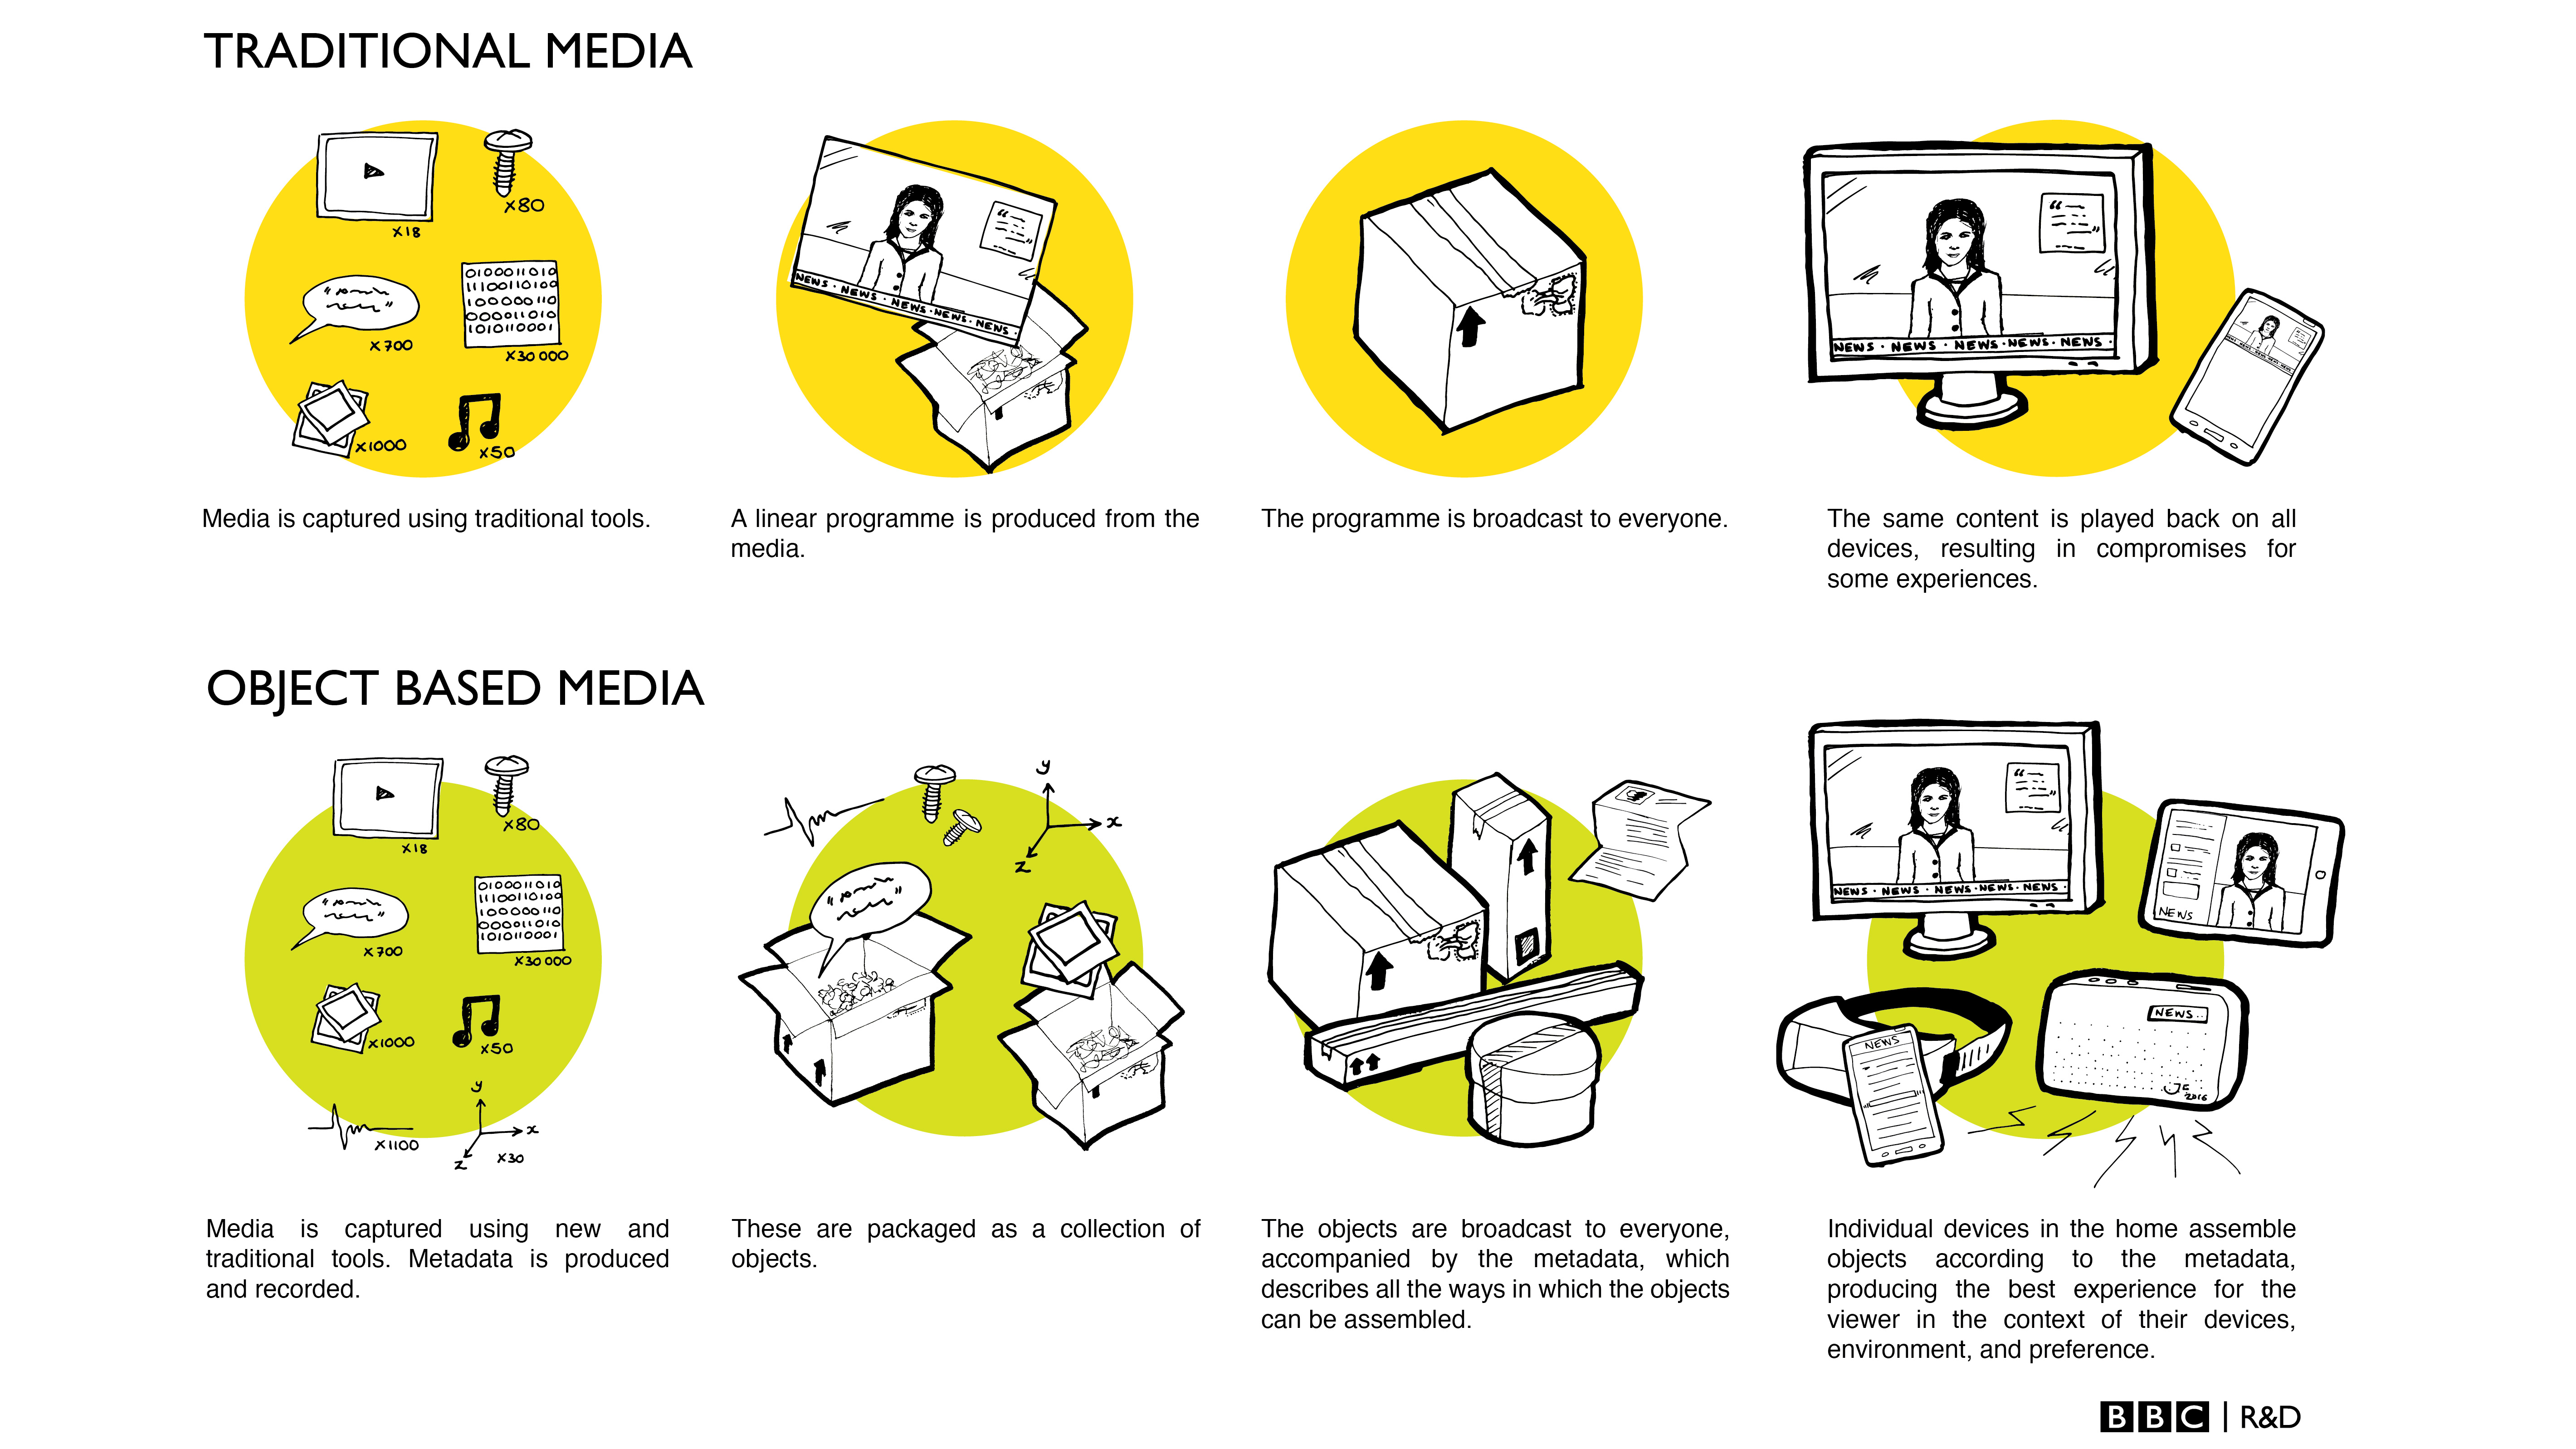 A detailed diagram outlining different approaches between producing traditional media and producing Object Based Media